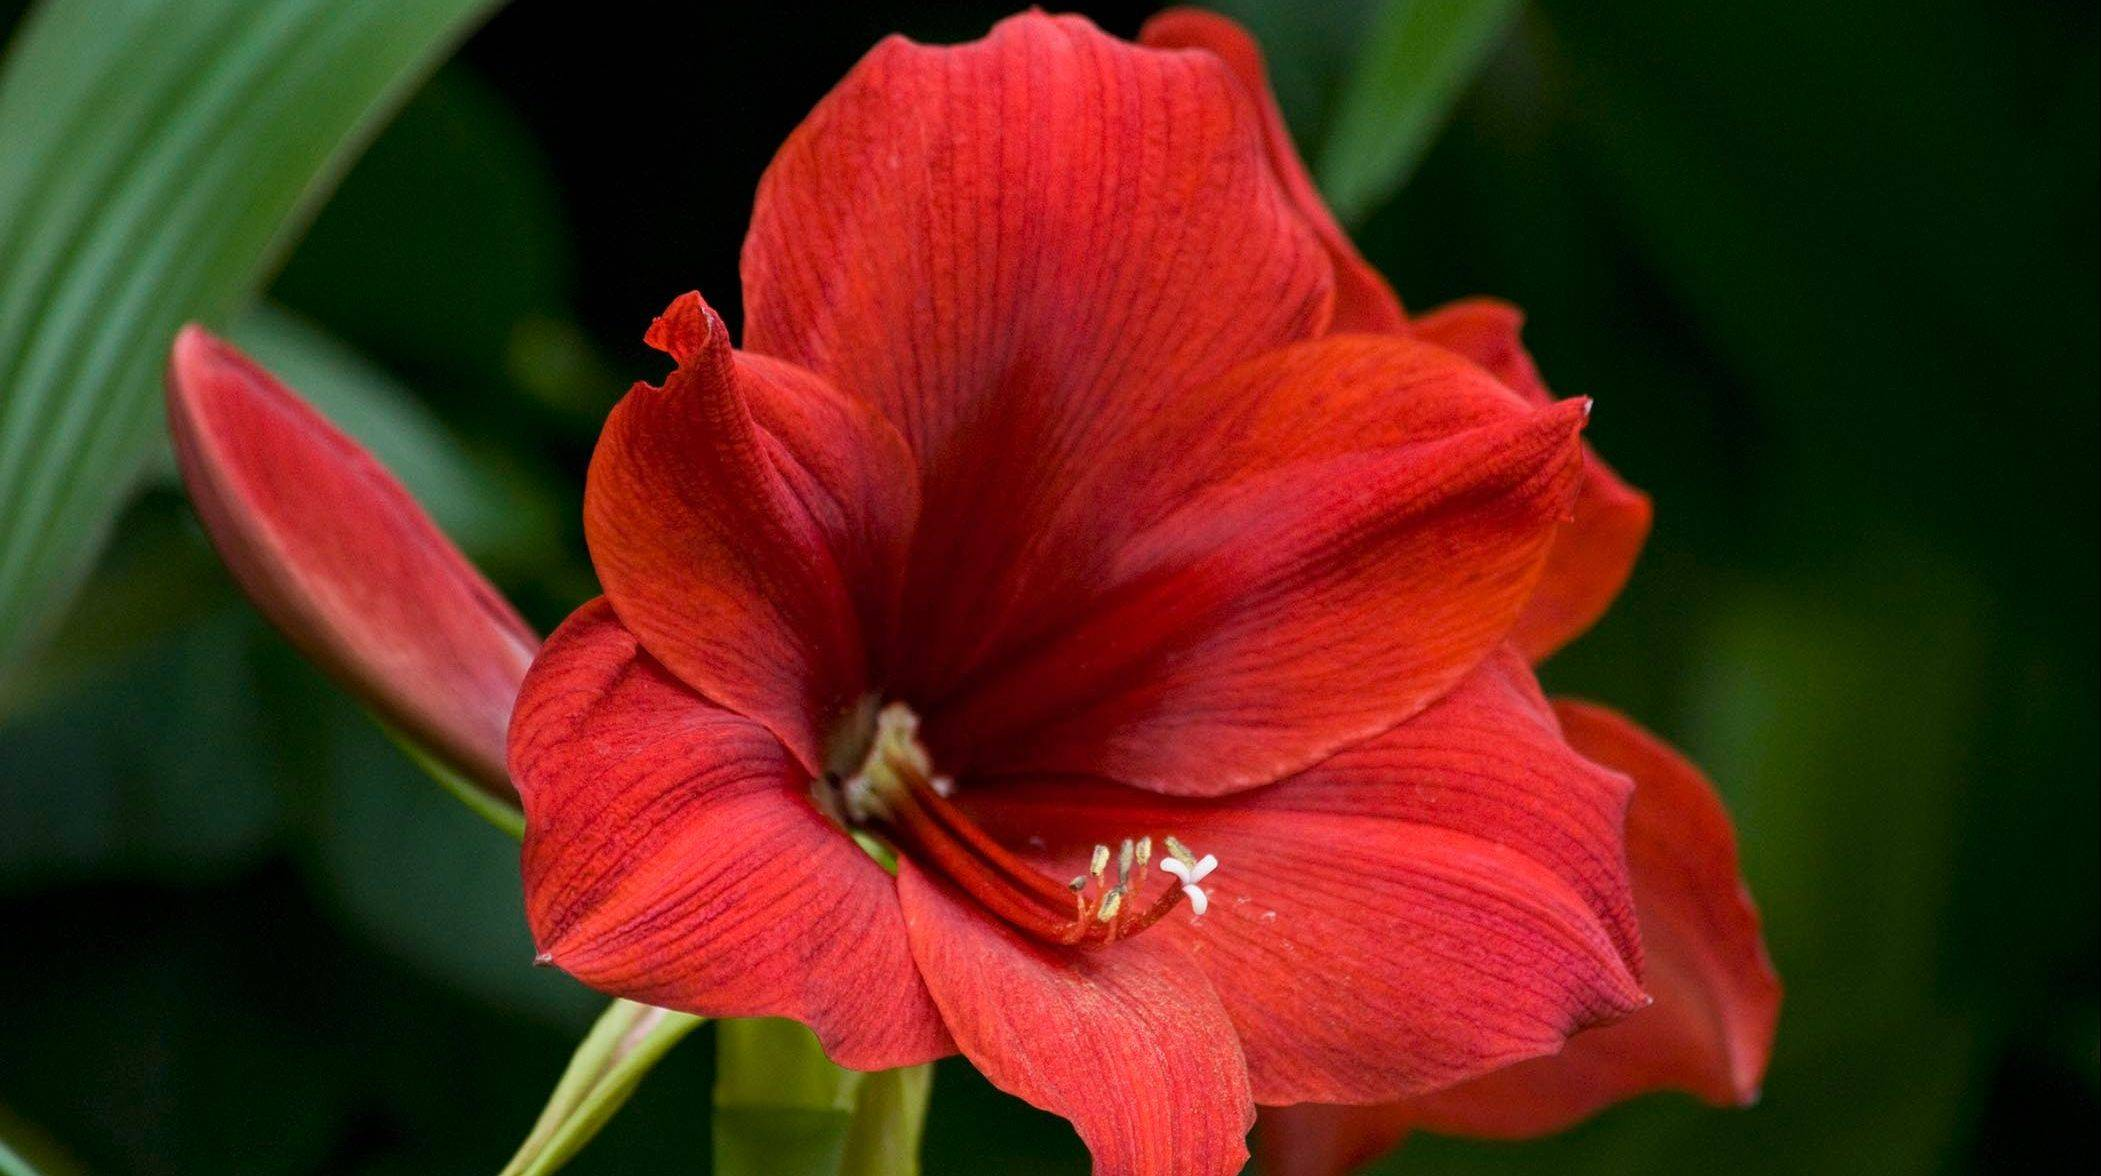 Amaryllis bulbs can be potted in shallow containers with a soilless growing medium.